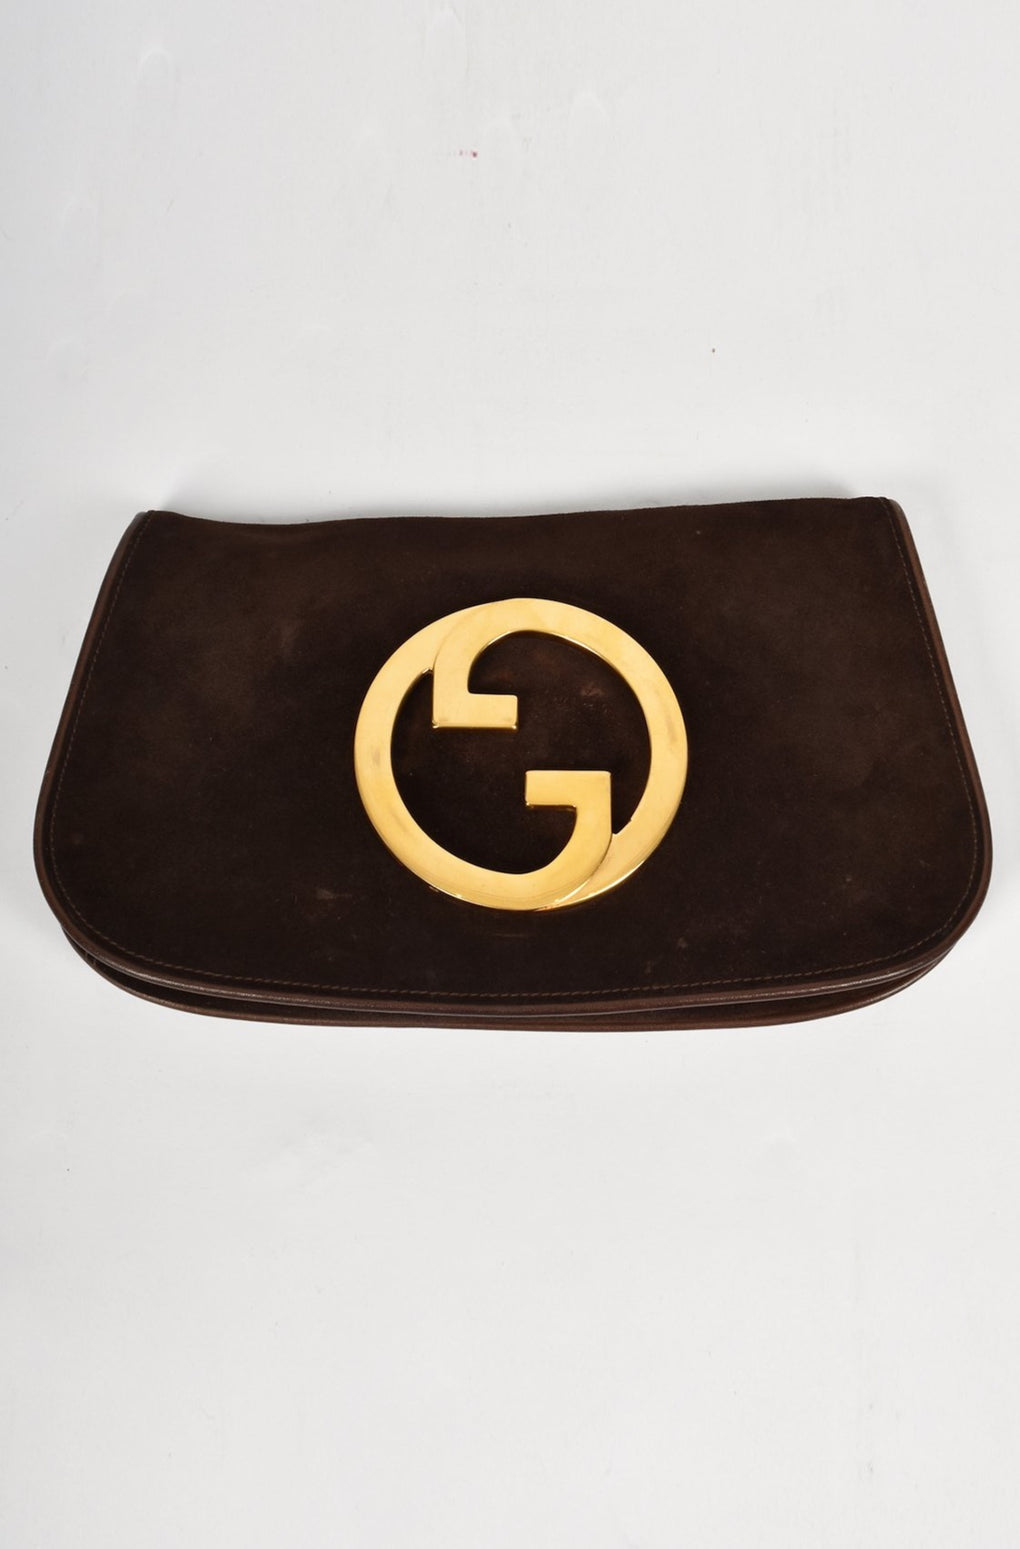 Gucci 70's brown suede clutch bag